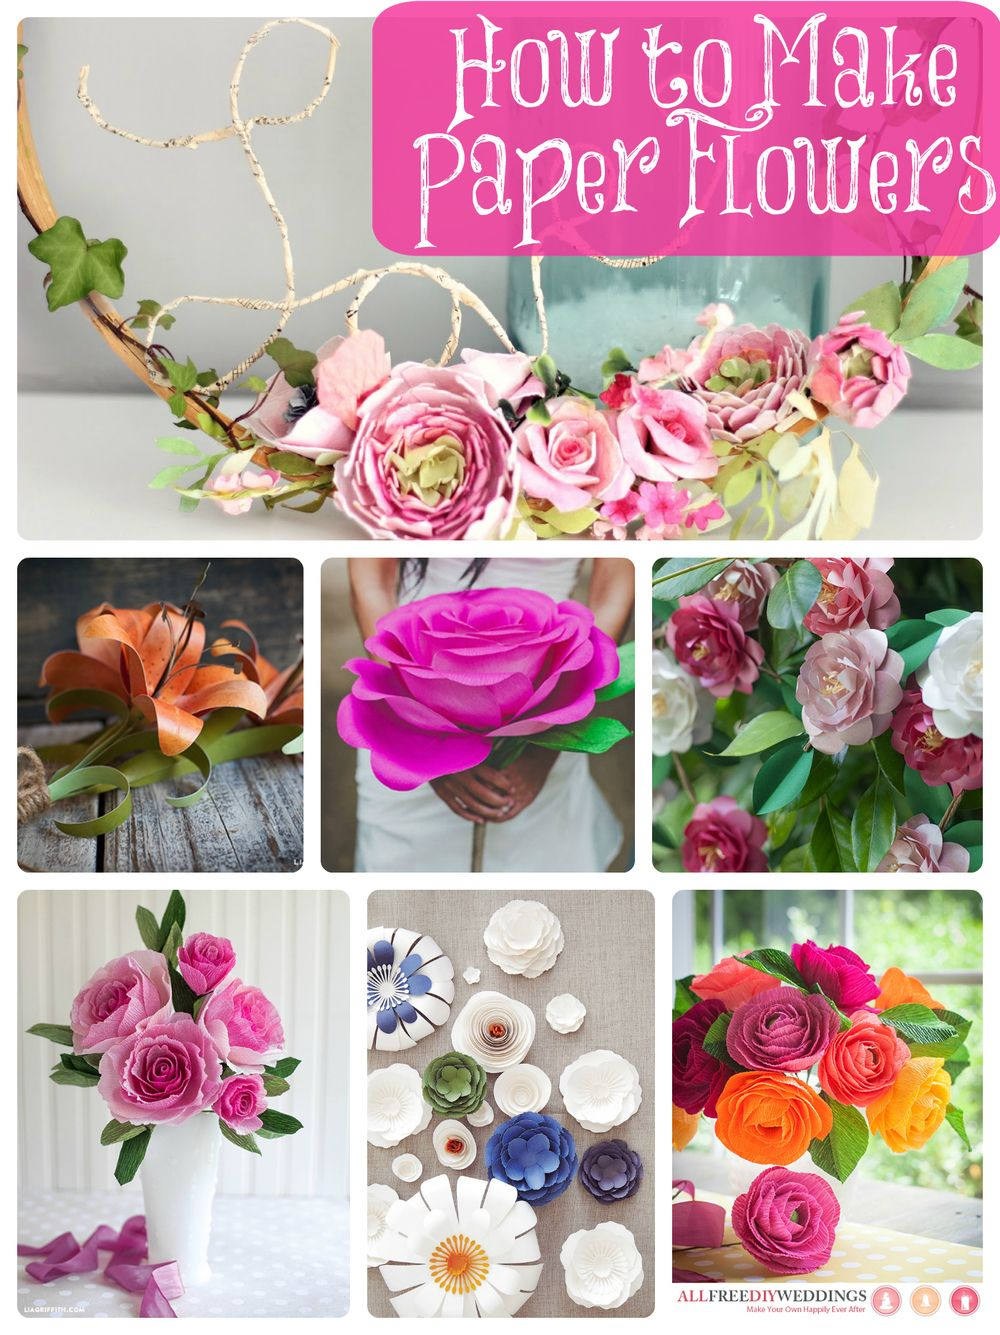 How to Make Paper Flowers: 40 DIY Wedding Ideas | DIY wedding ...